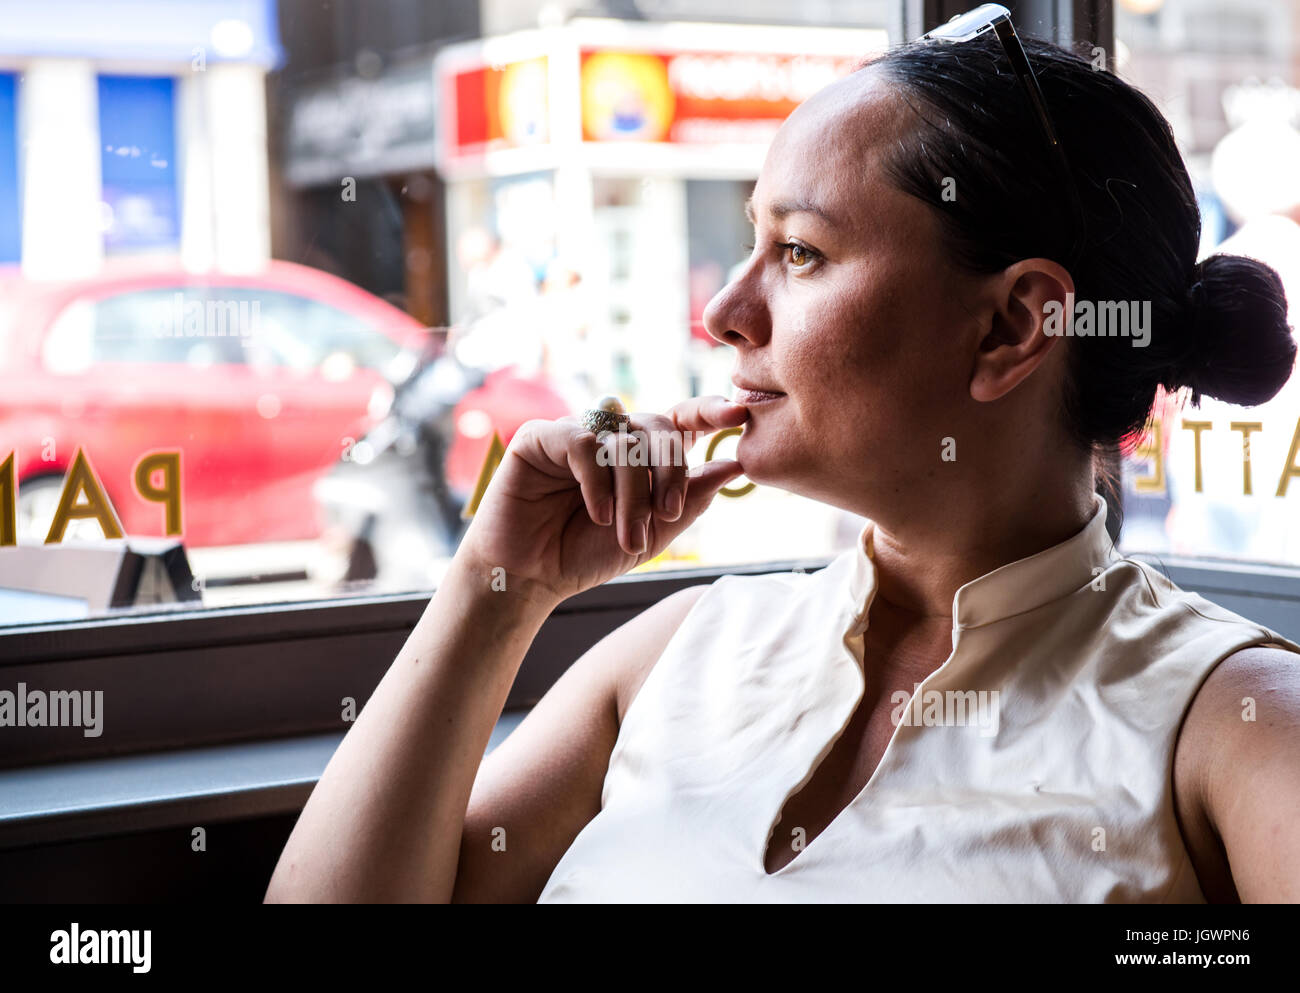 Businesswoman with hand on chin in coffee bar - Stock Image